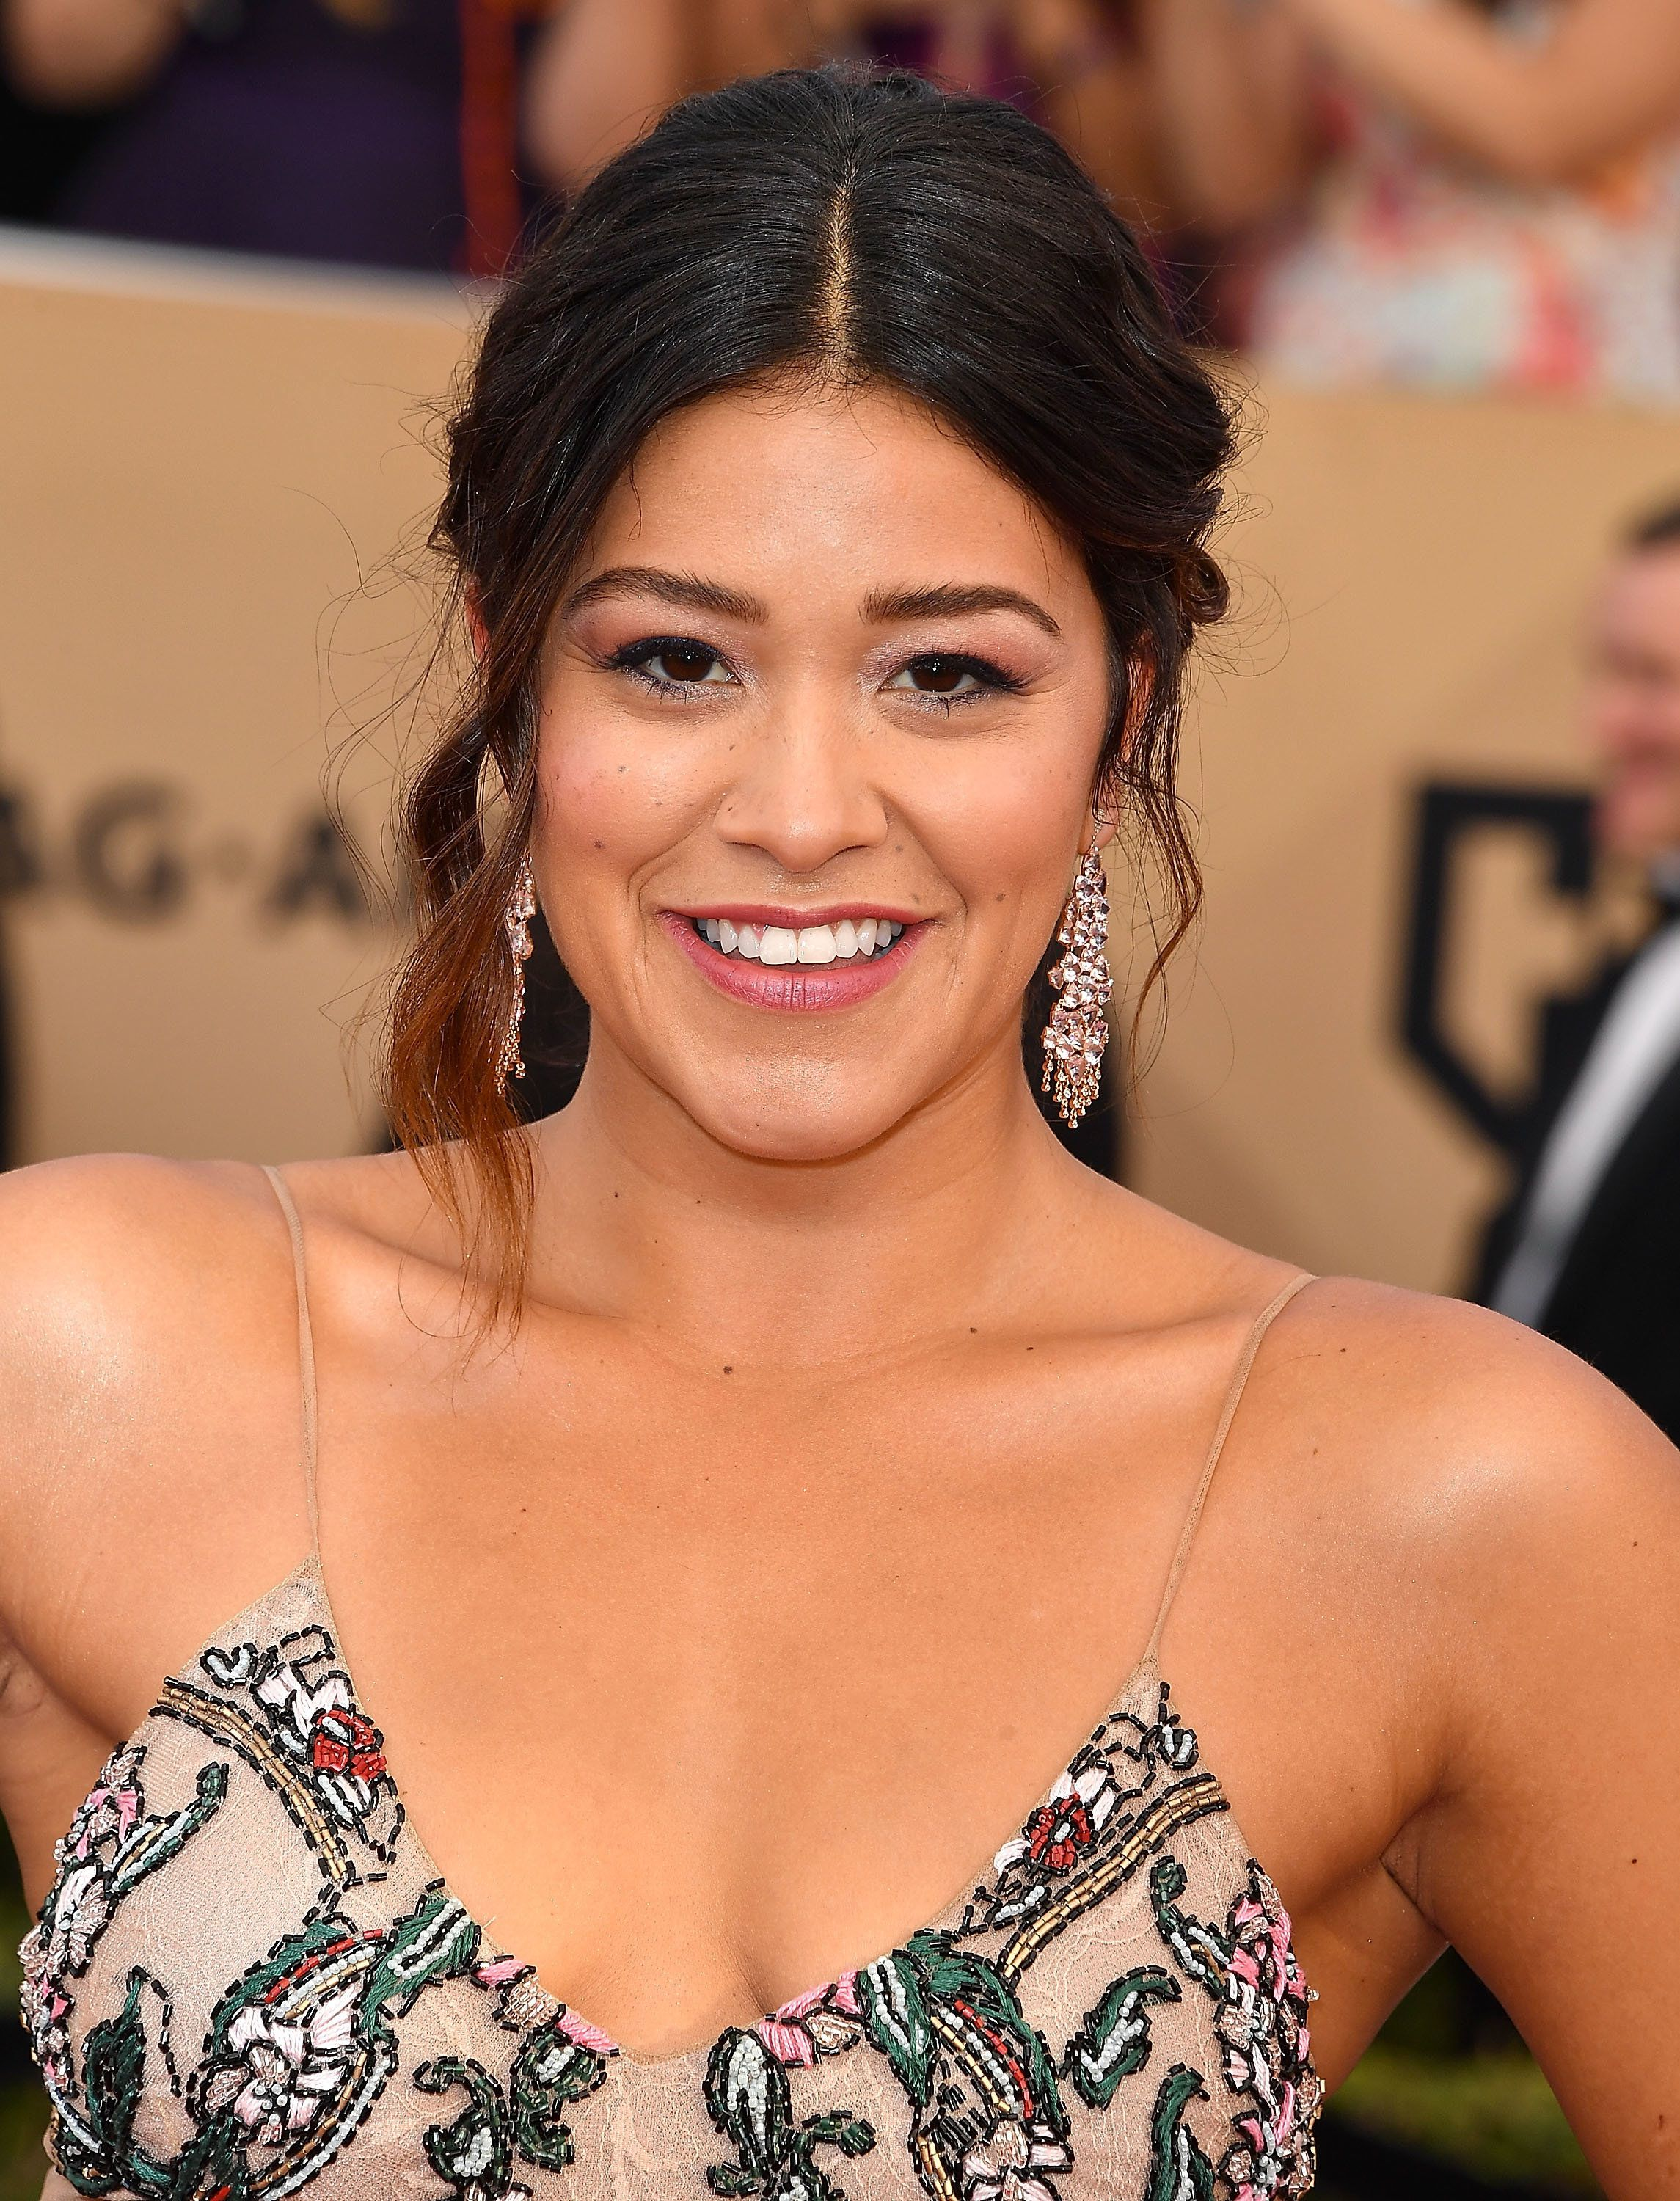 LOS ANGELES, CA - JANUARY 29:  Gina Rodriguez arrives at the 23rd Annual Screen Actors Guild Awards at The Shrine Expo Hall on January 29, 2017 in Los Angeles, California.  (Photo by Steve Granitz/WireImage)